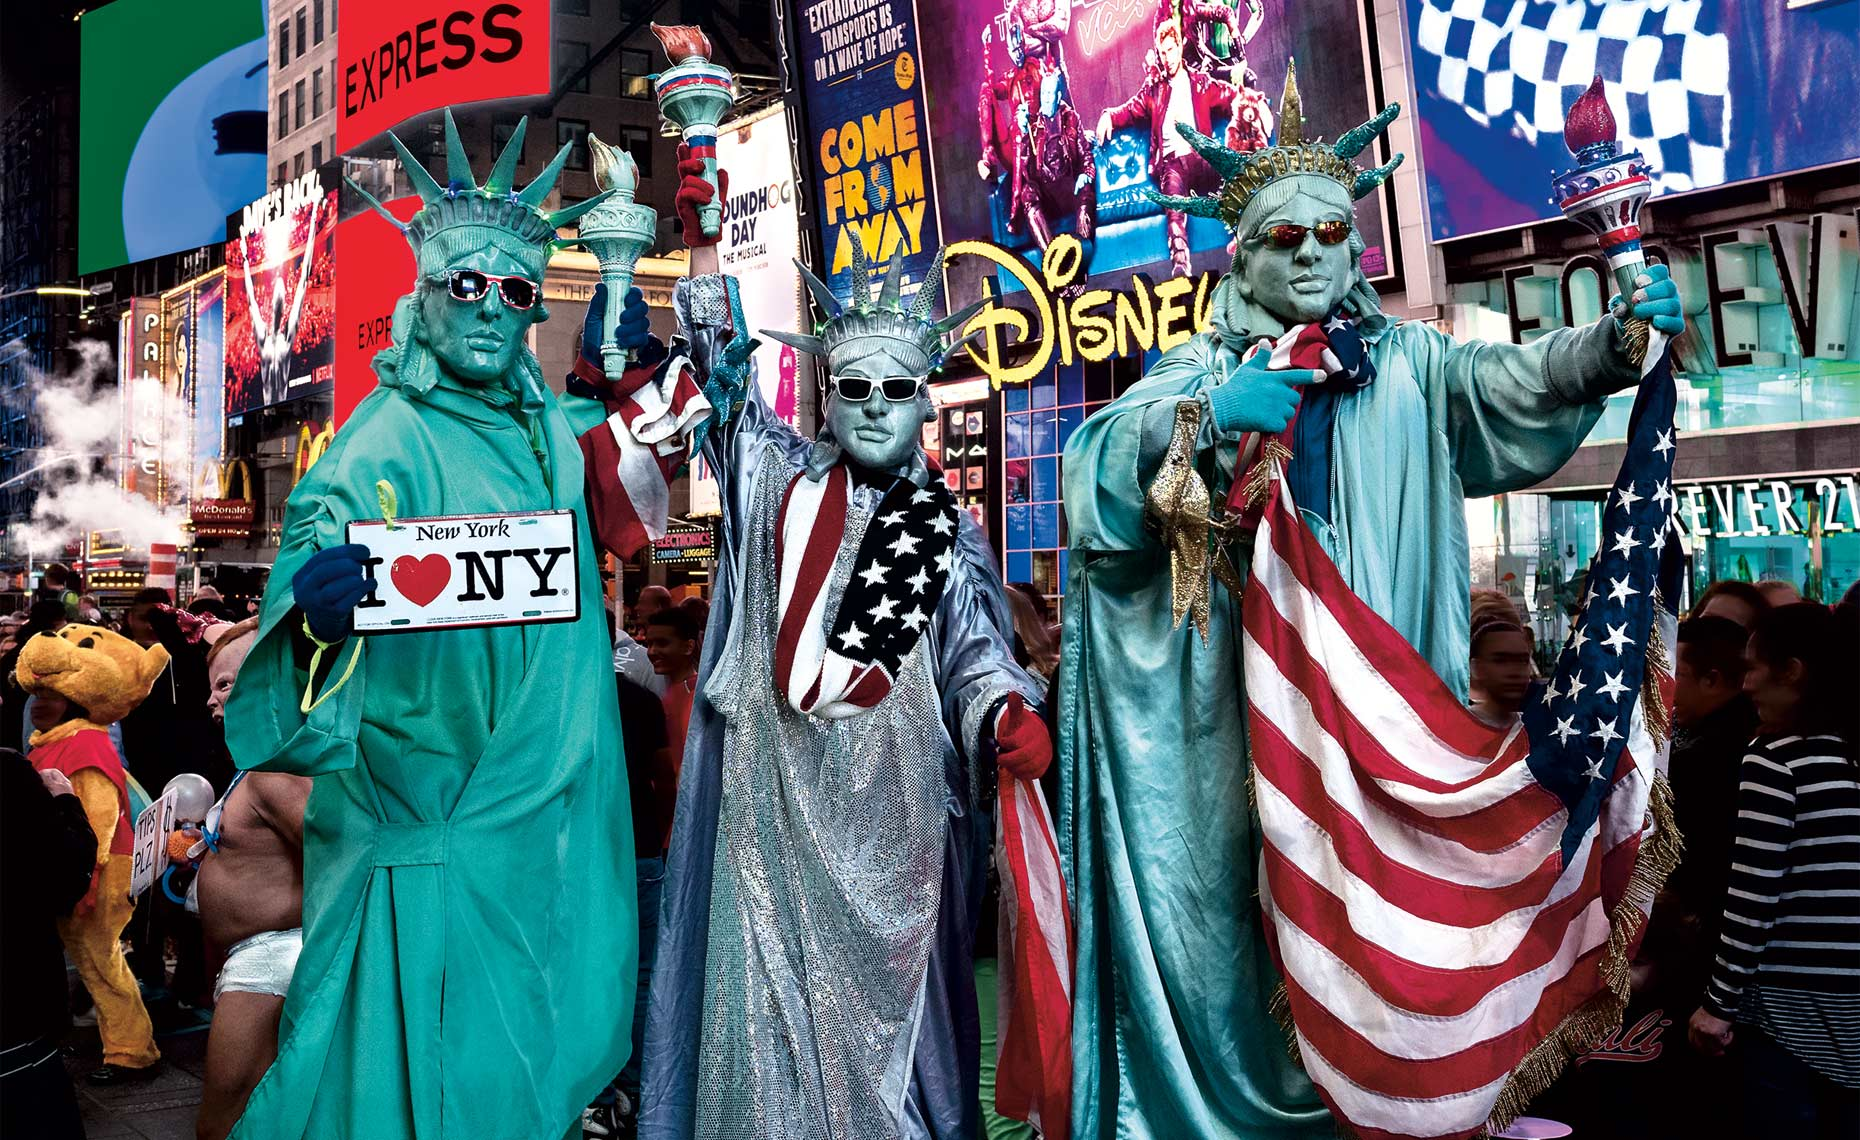 Statue-of-Liberty-Impersonators-in-Times-Square-New-York-Postcard